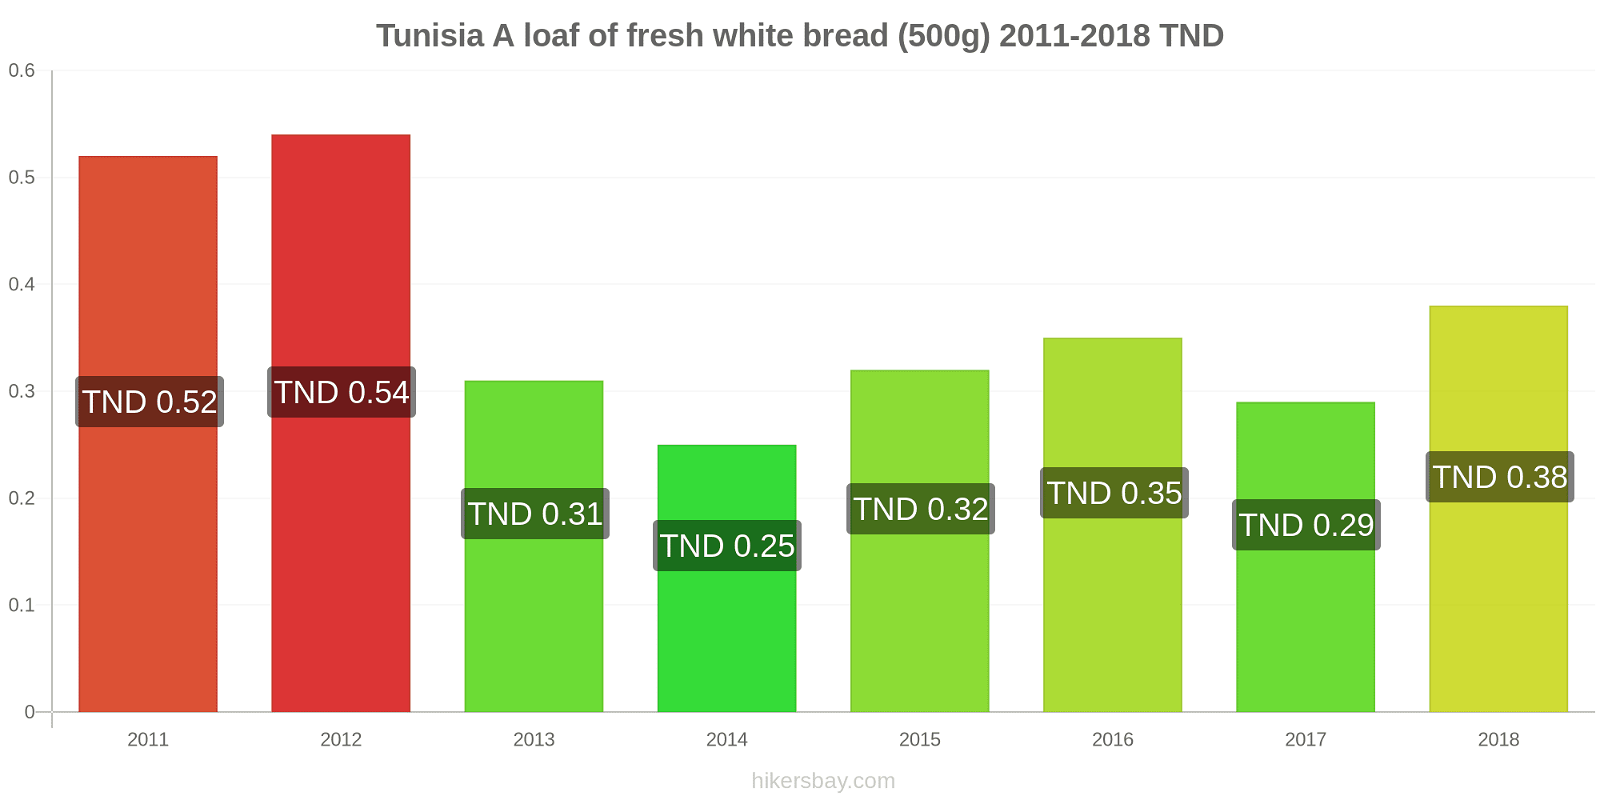 Tunisia price changes A loaf of fresh white bread (500g) hikersbay.com